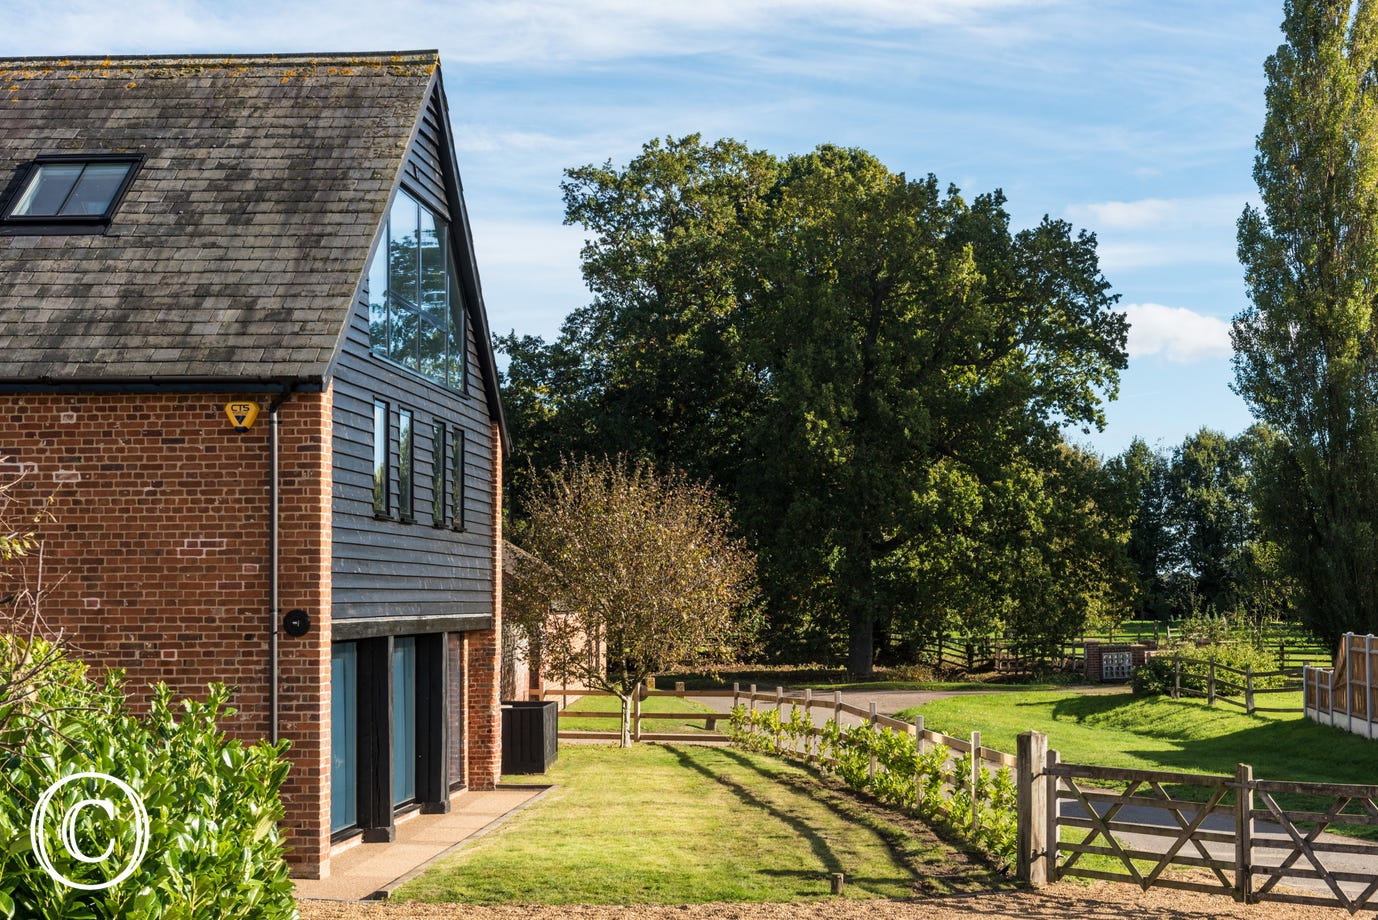 Exterior image of this thatched barn in a stunning rural setting